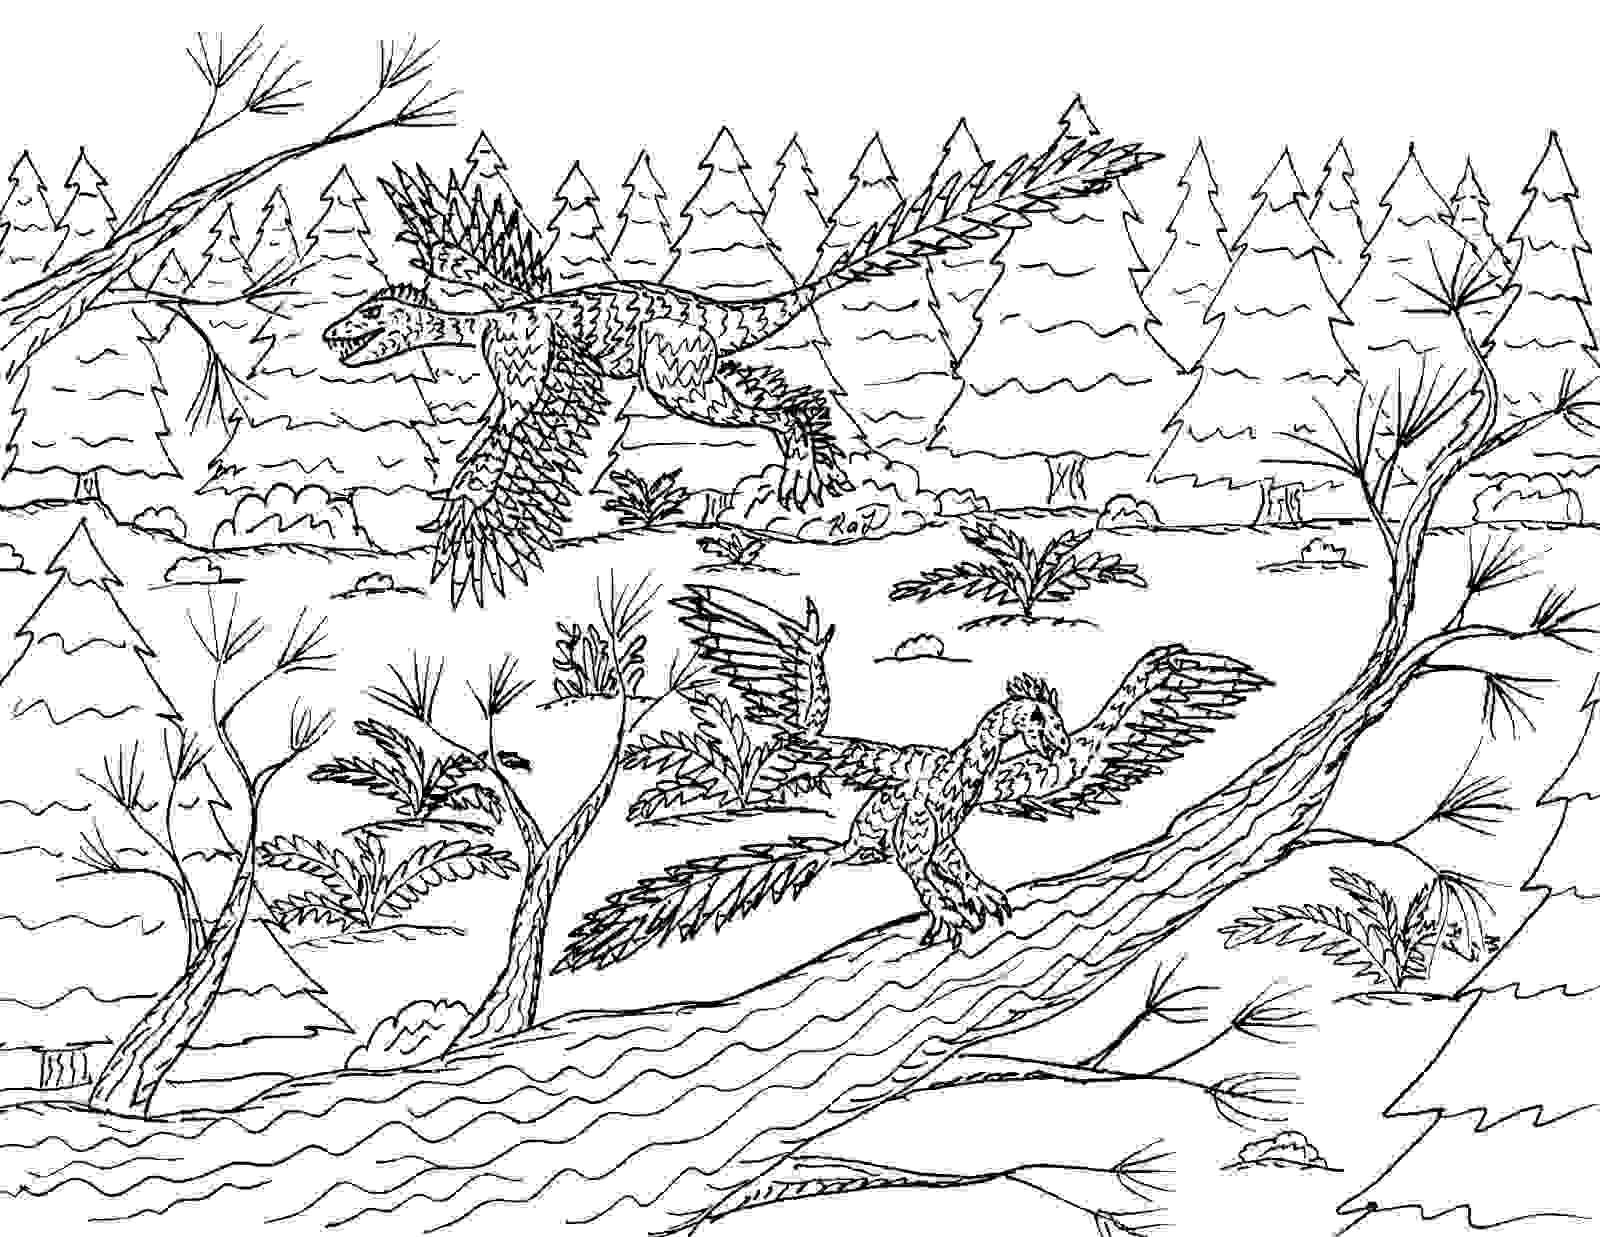 Archaeopteryx Pair in the Forest Coloring Page